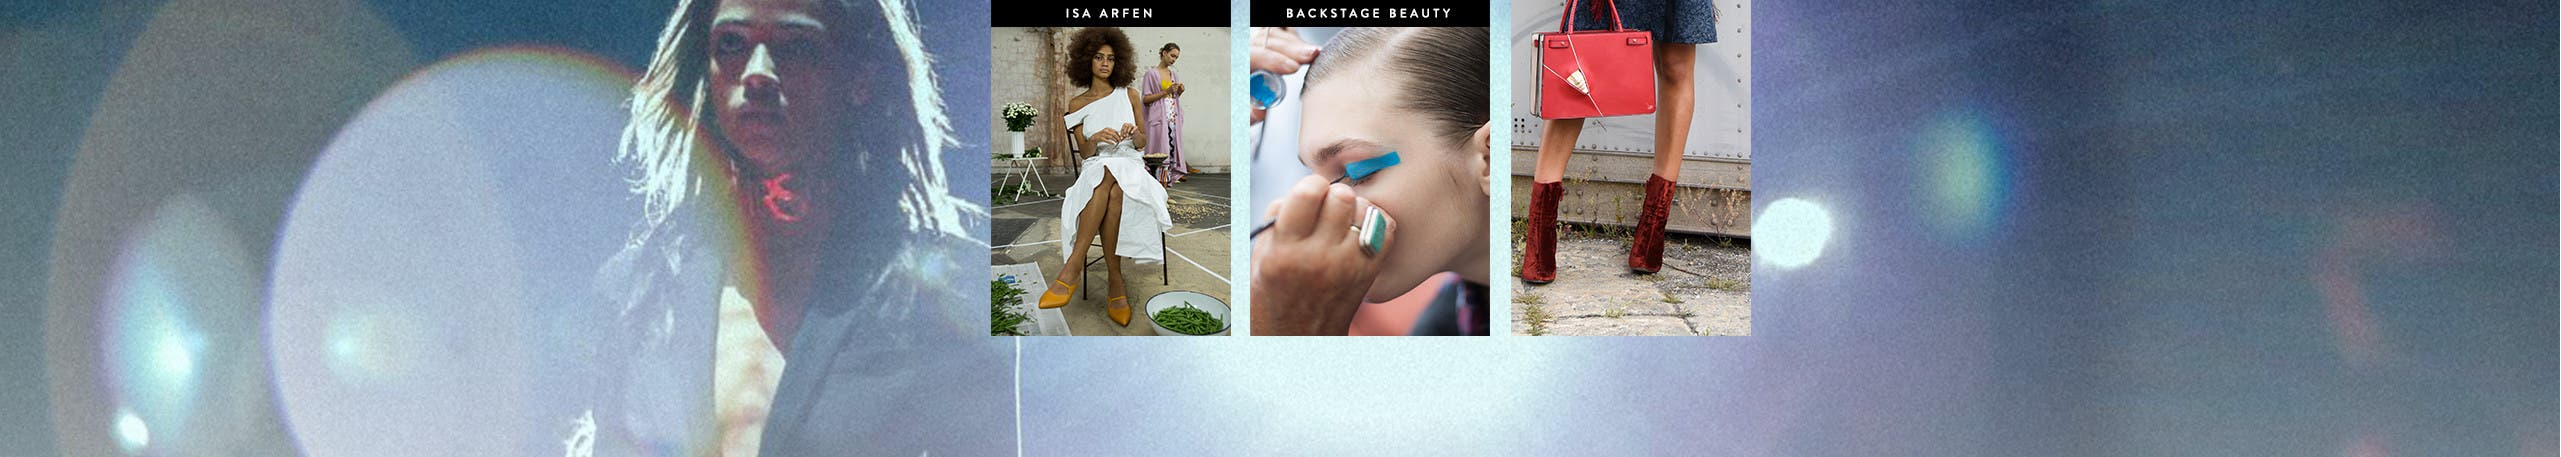 Spring 2017 fashion week: Isa Arfen. Backstage beauty: tips, trends, tools of the trade. Street style on the ground.